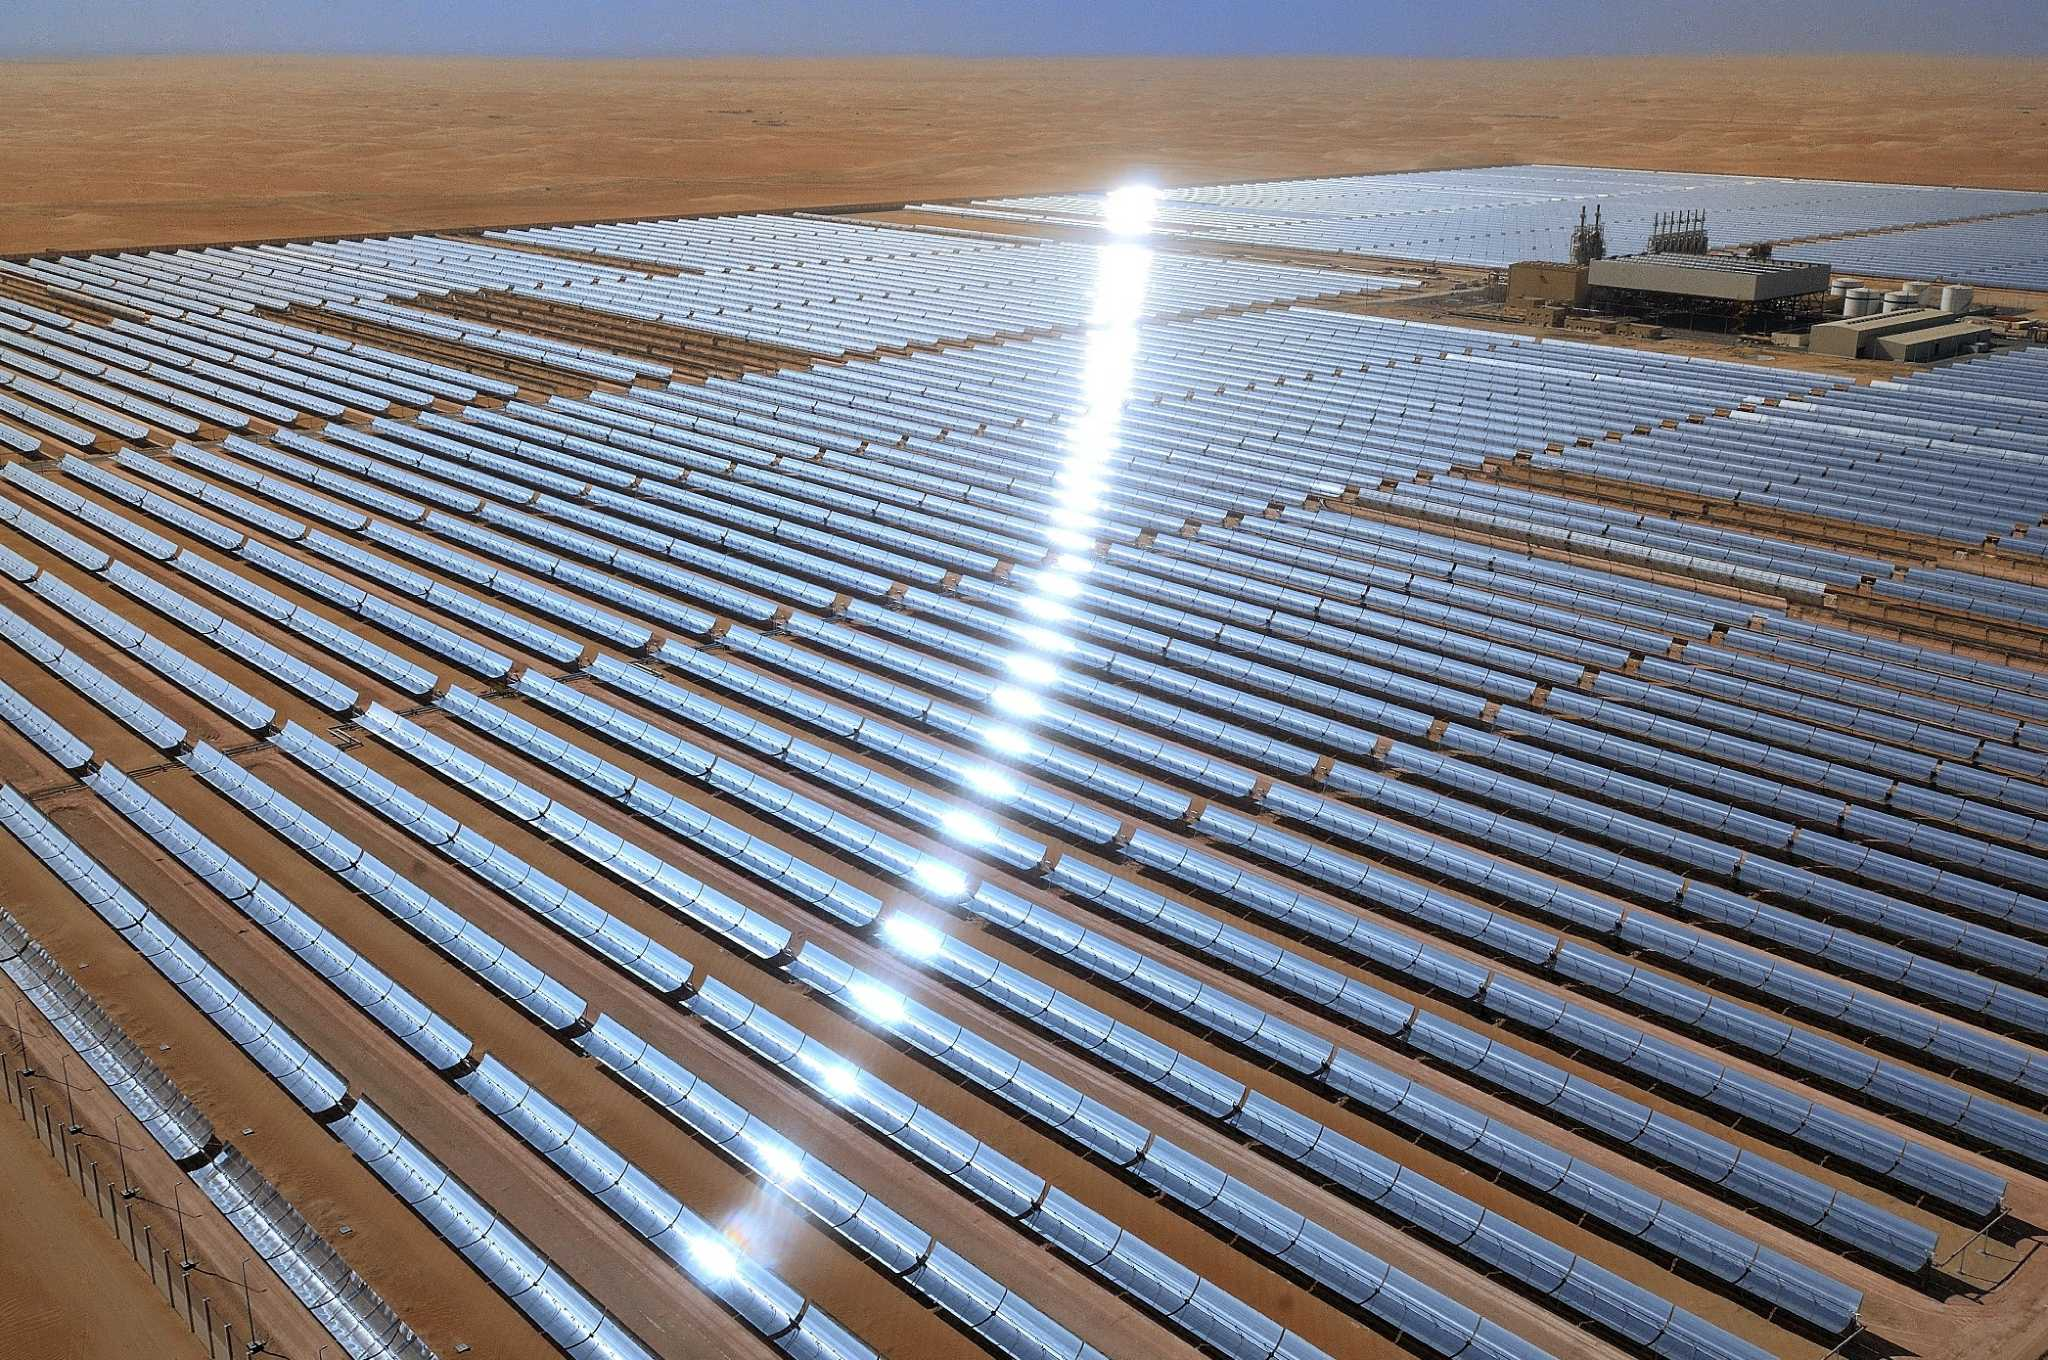 The 100-megawatt Shams 1 concentrated solar power plant in the Western Region of Abu Dhabi extends over about one square mile. Shams 1 is the world s largest concentrated solar power plant in operation.